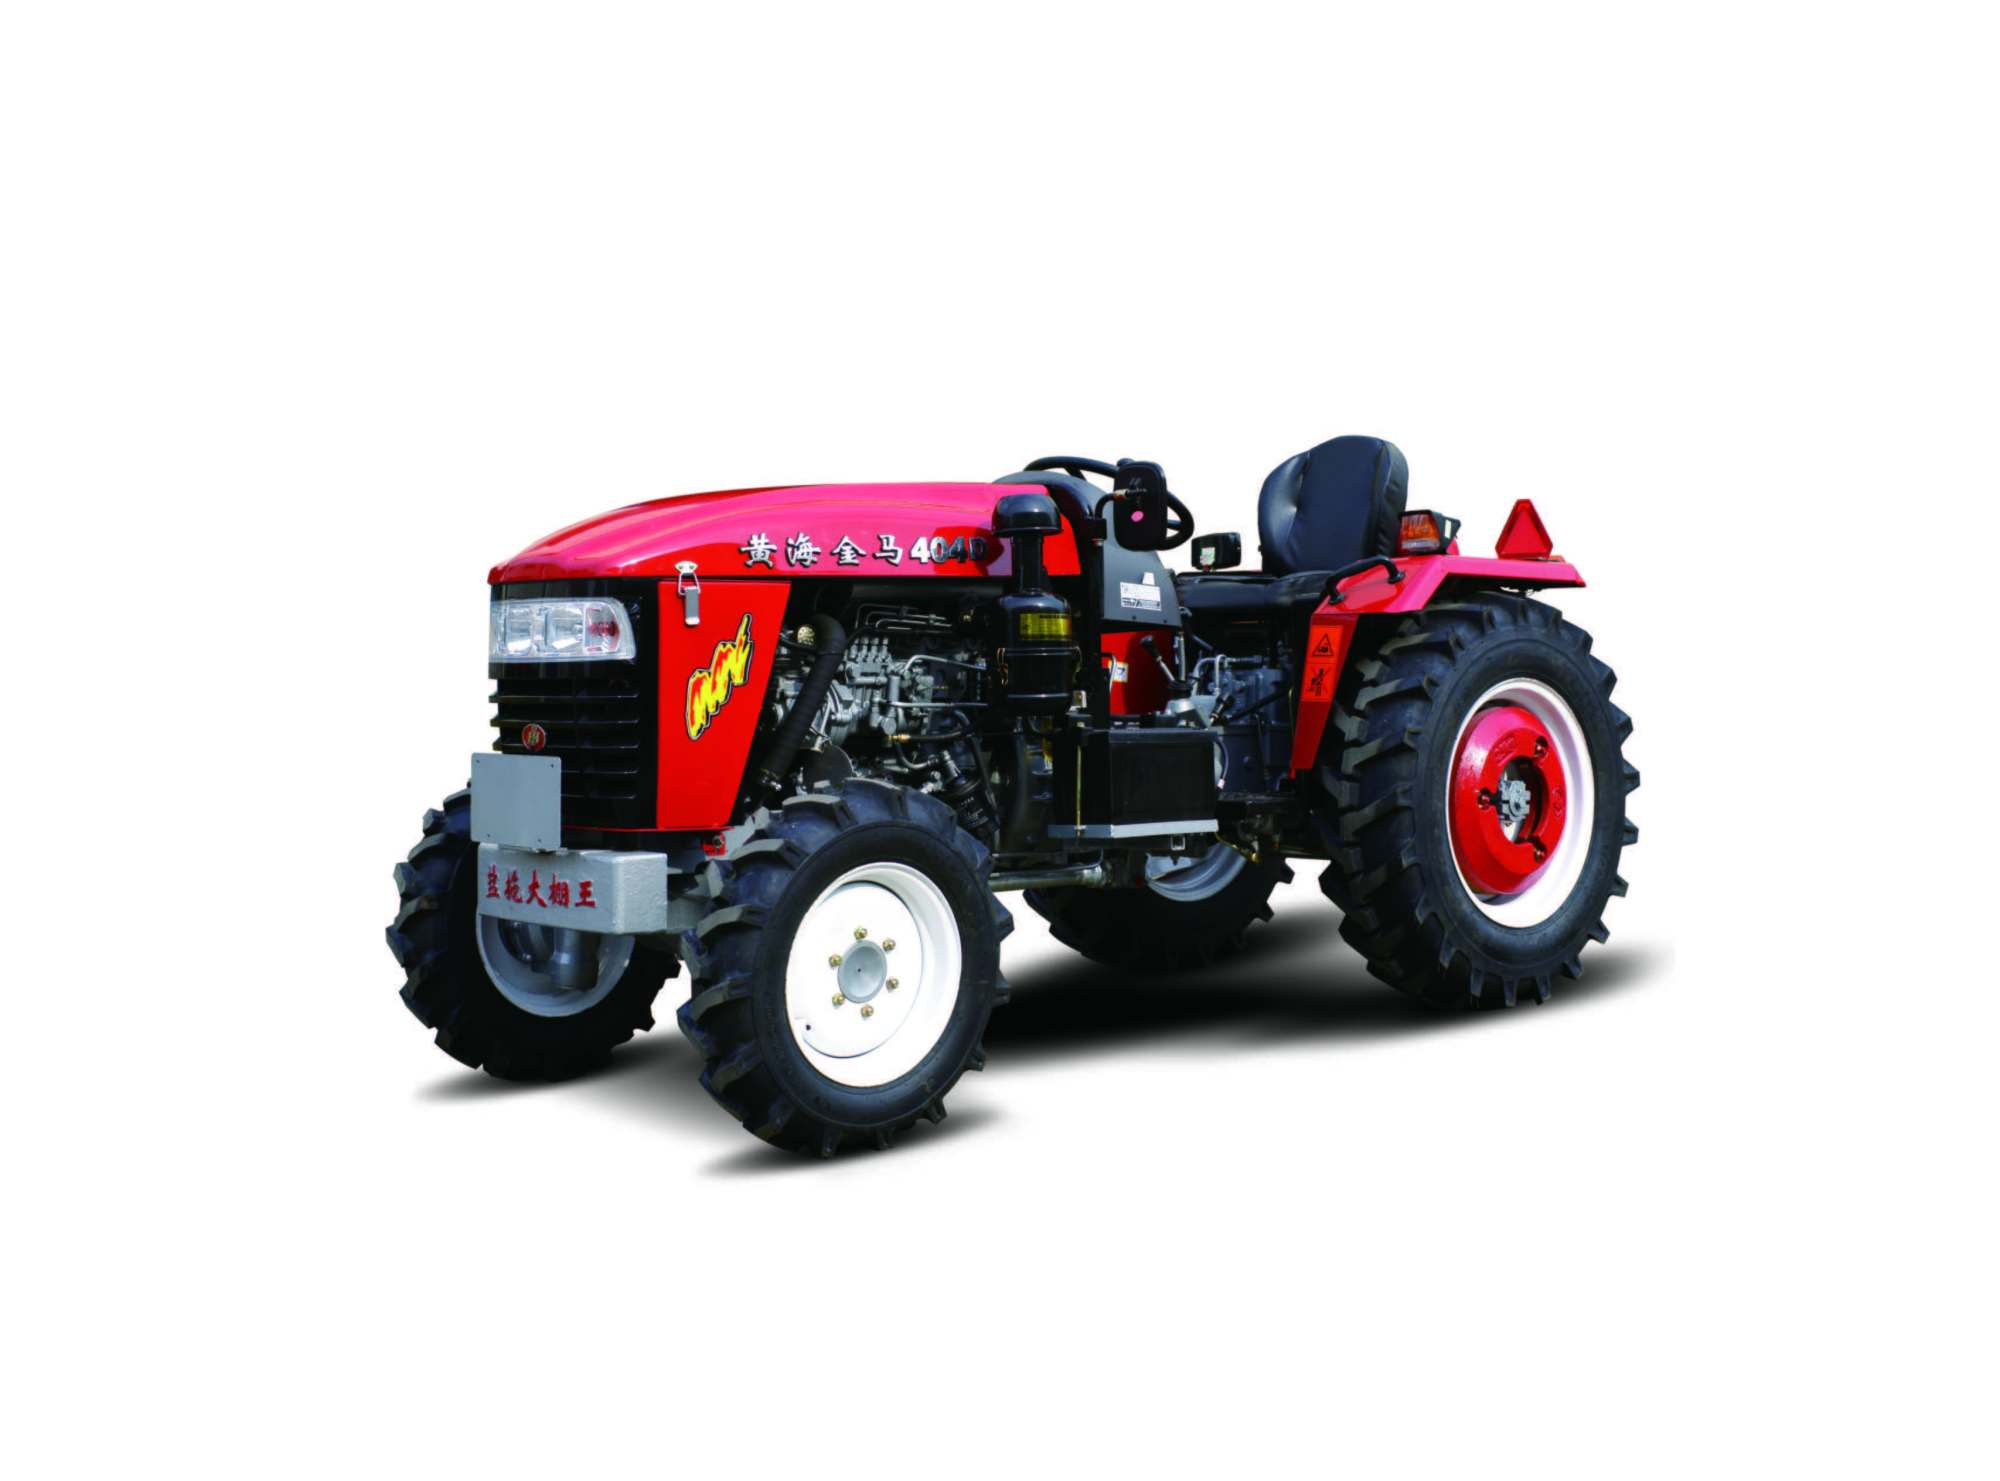 hight resolution of jinma 4wd 40hp garden mini tractor jinma 404d jinma tractor jinma tractor 300 series electrical diagram